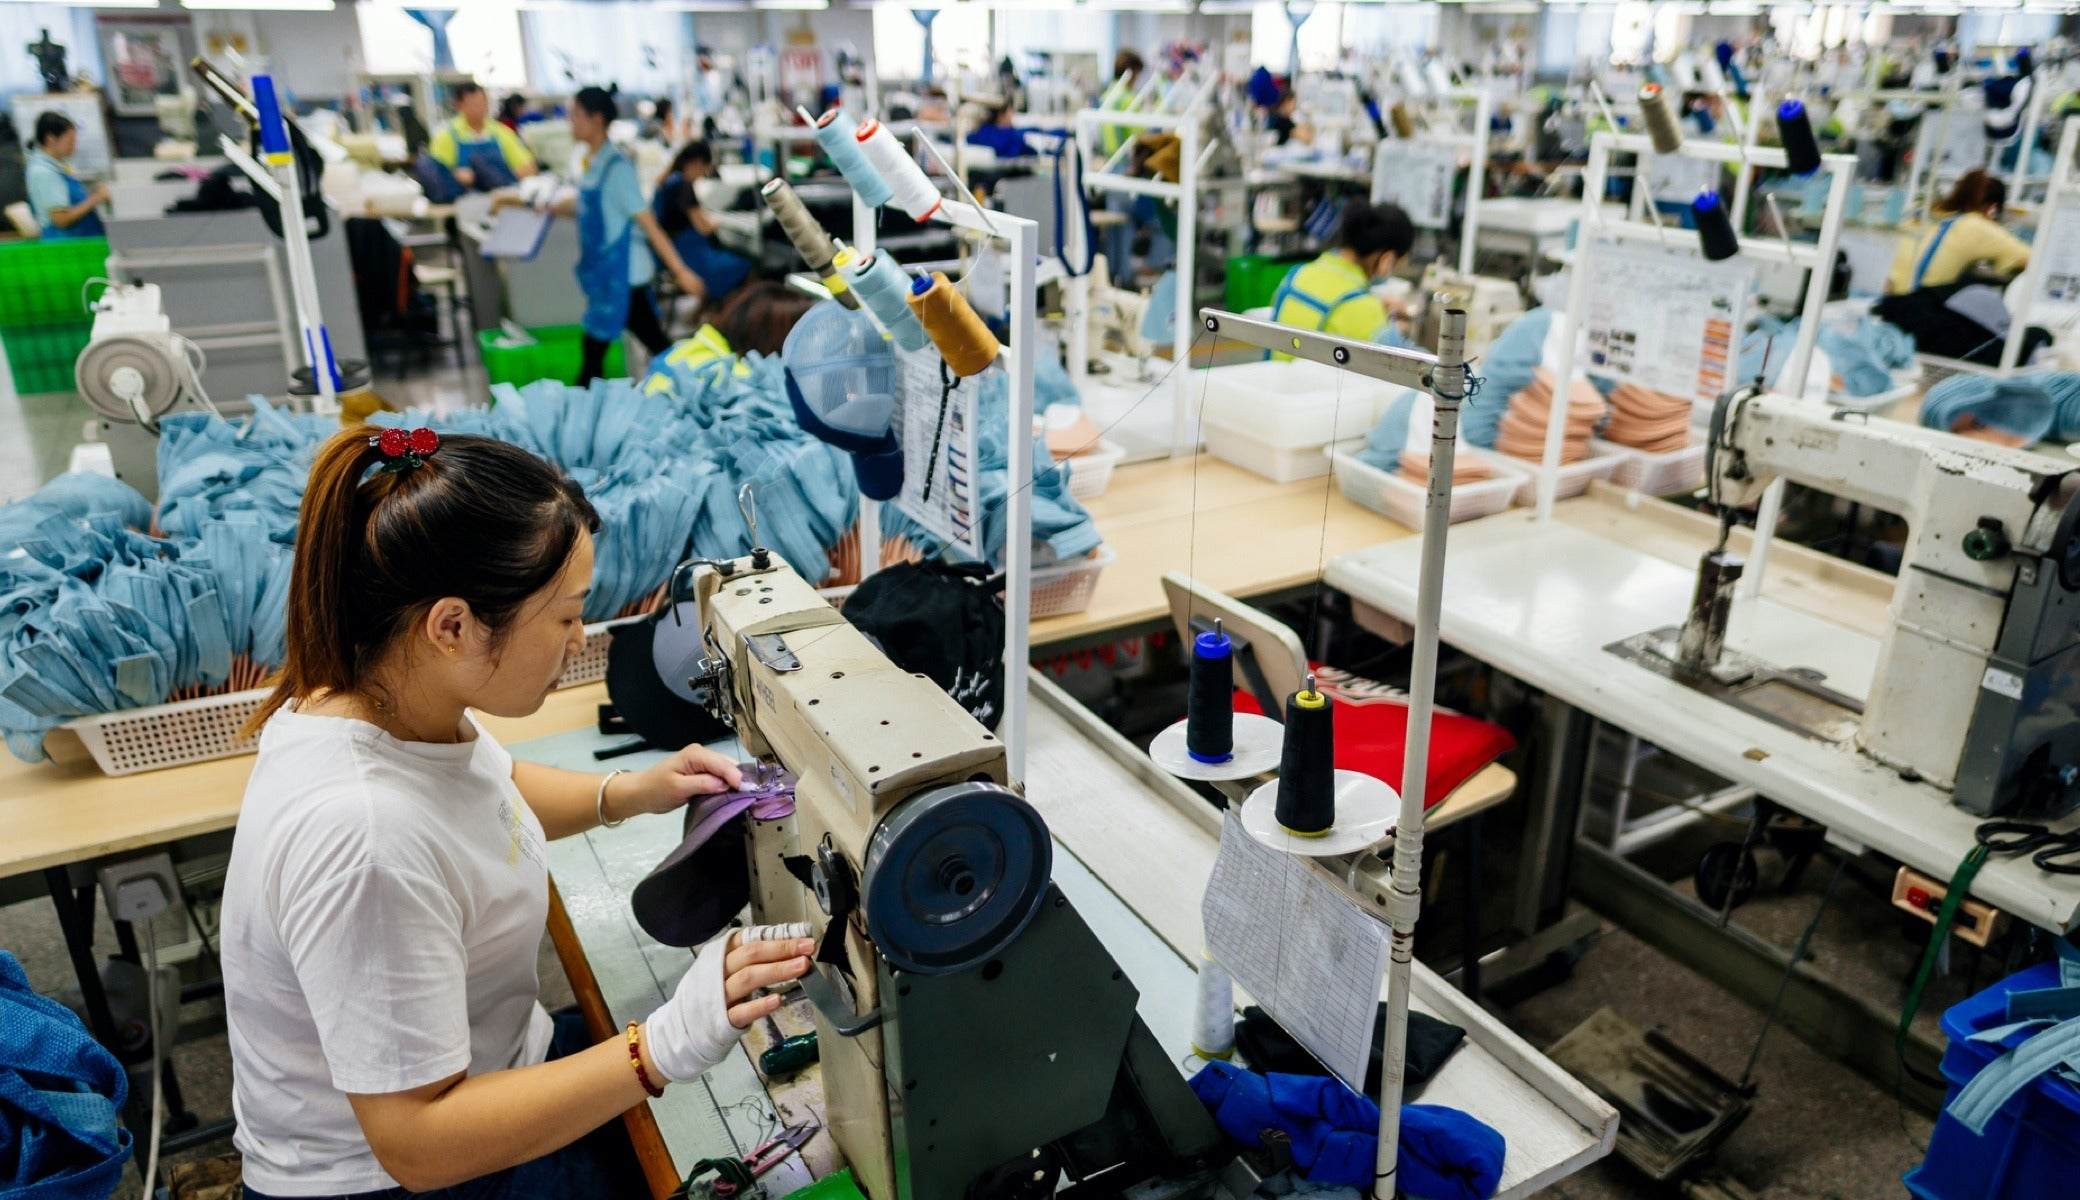 Qian Qian Wei sews on the factory floor at ASI in Shanghai.